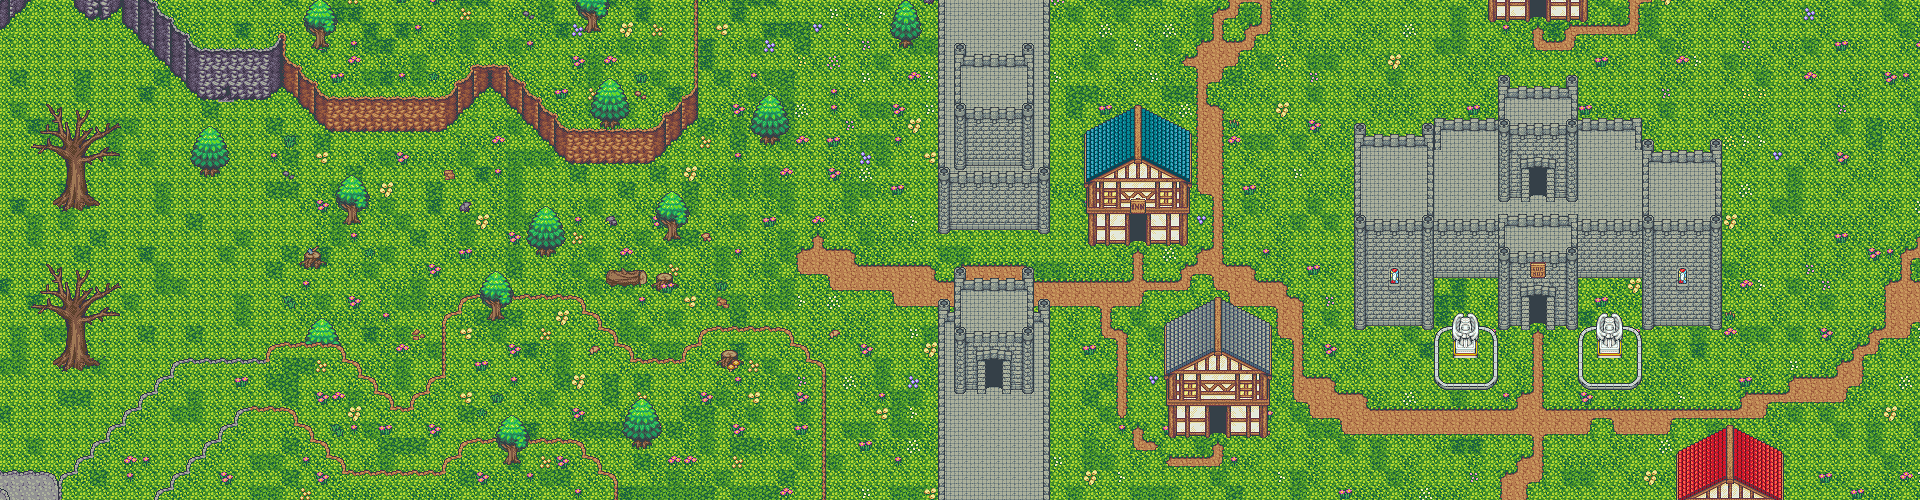 Intersect Engine - Free 2D MMORPG Maker